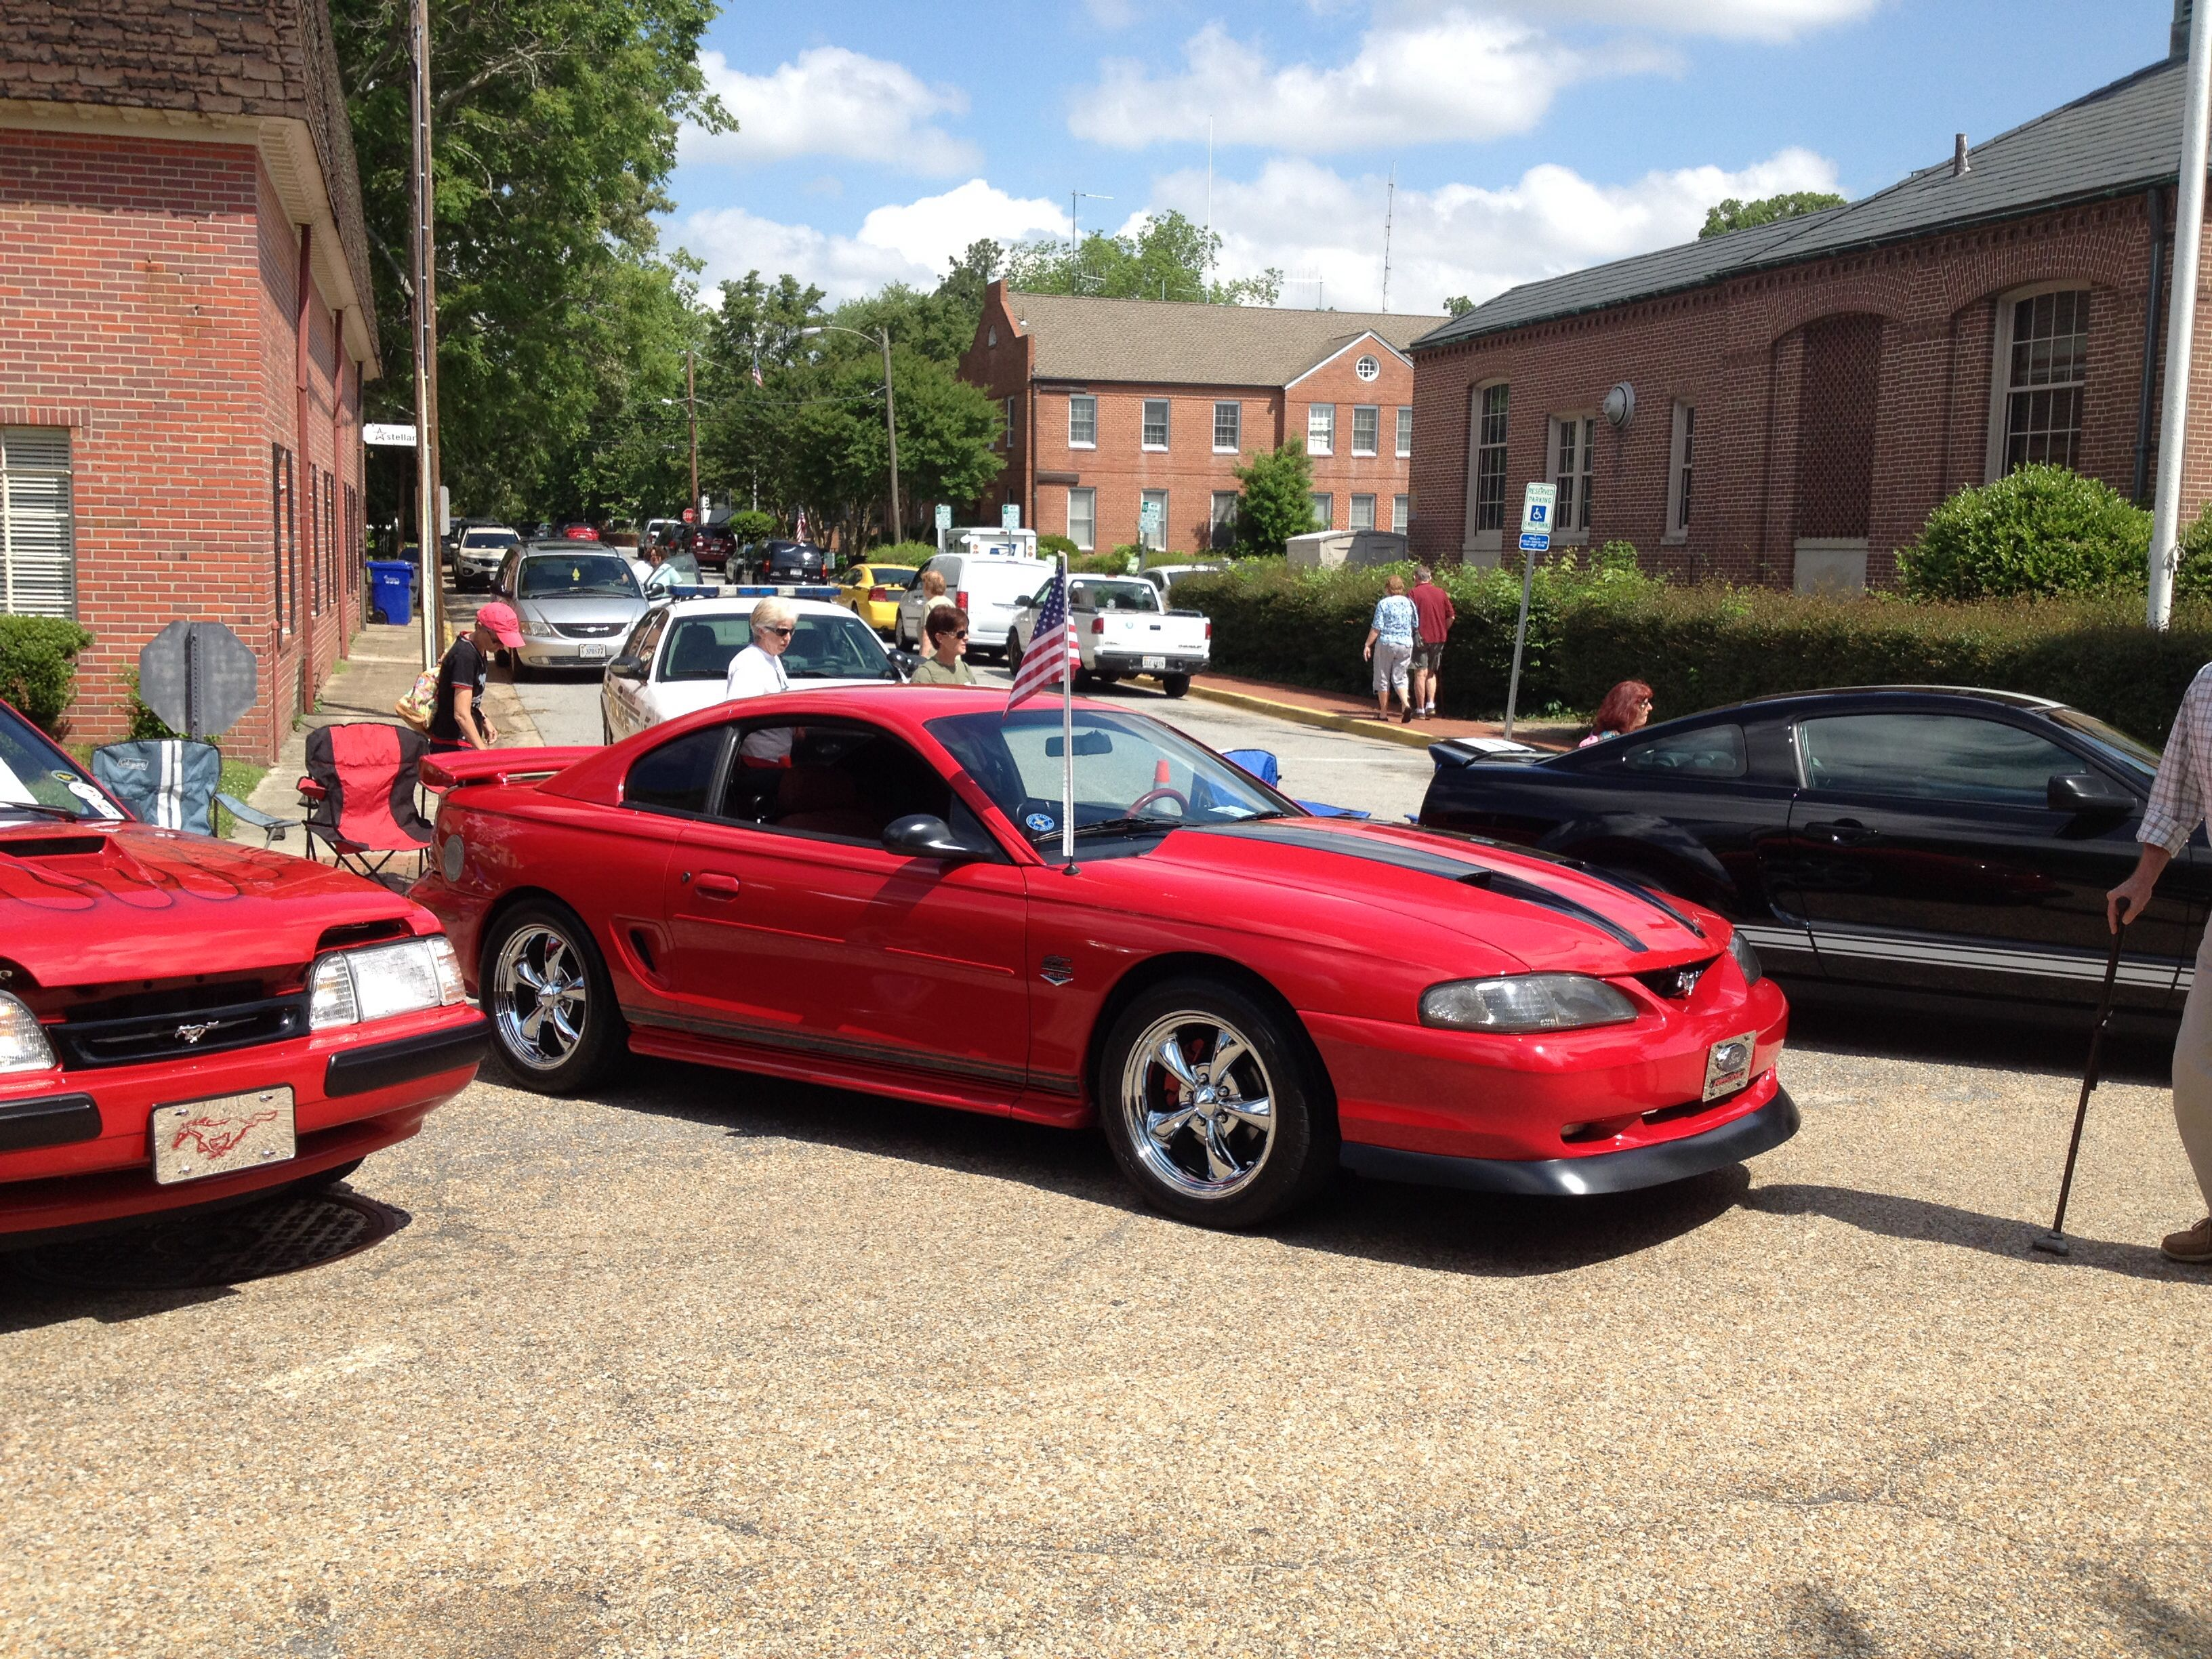 Mustang with Shelby / Mach 1style hood